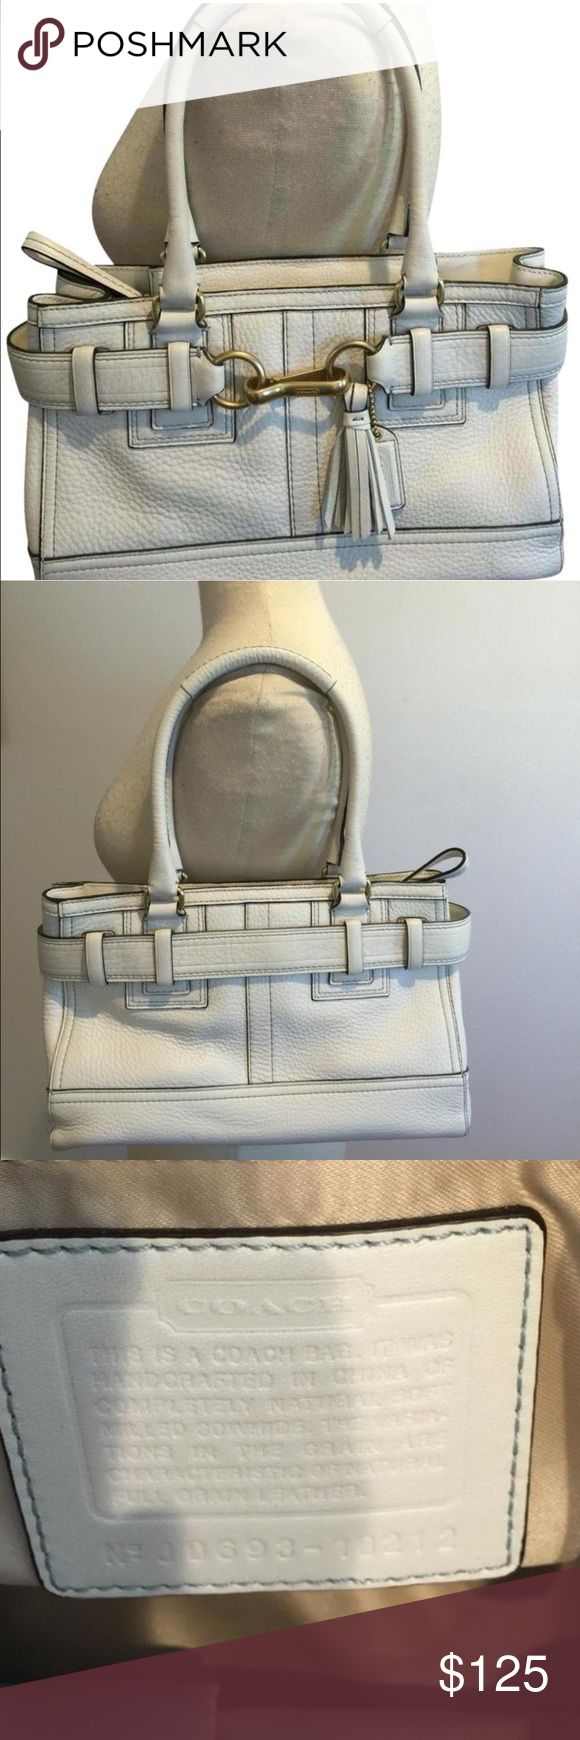 "Authentic Coach Purse Beautiful white leather satchel. EUC. The measurements are 13""L x 7""H x 5""W. if you have any questions please feel free to ask. :) Coach Bags Satchels"